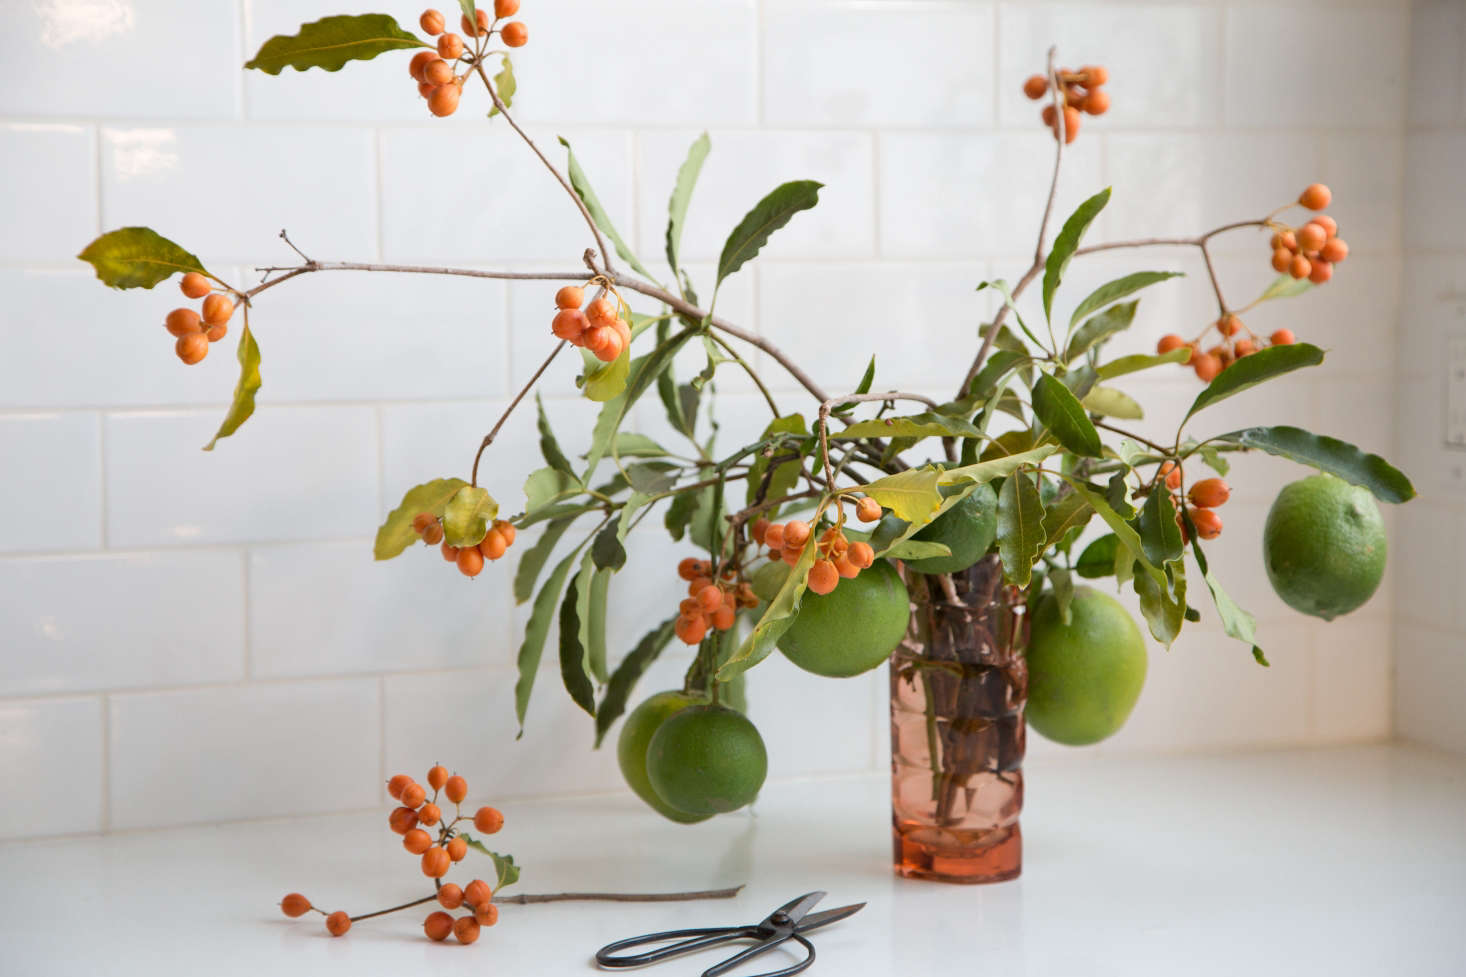 Floral designer Sophia Moreno-Bunge clipped the orange berries while on a walk in her neighborhood, and found the unripe lemons in a friend's yard. Photograph by Beth Coller for Gardenista, from  Ways to Bring Nature Home with Sophia Moreno-Bunge.